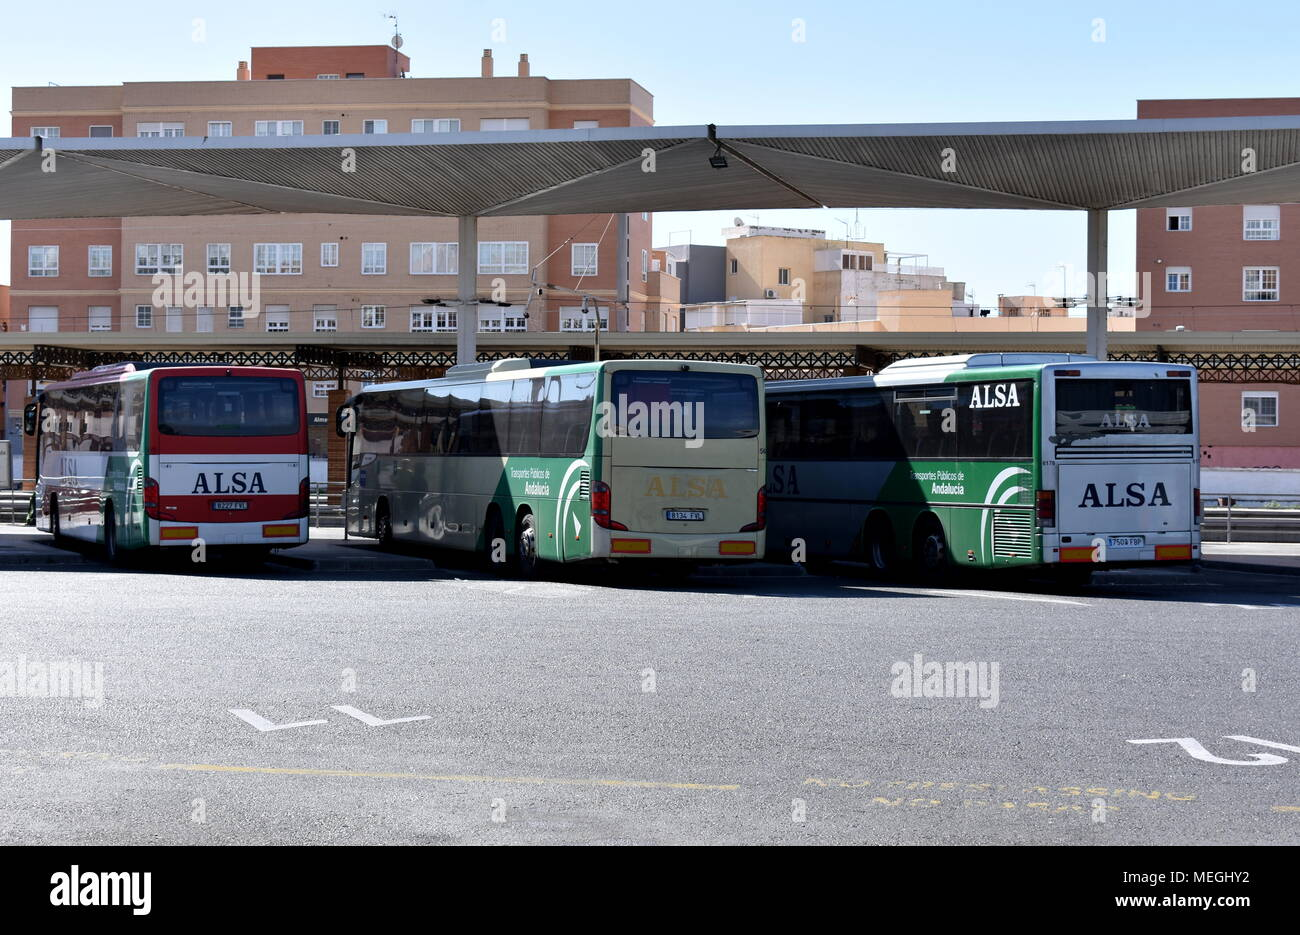 Buses waiting to depart, Almeria bus station (Estacion Intermodal), Almeria, Spain - Stock Image